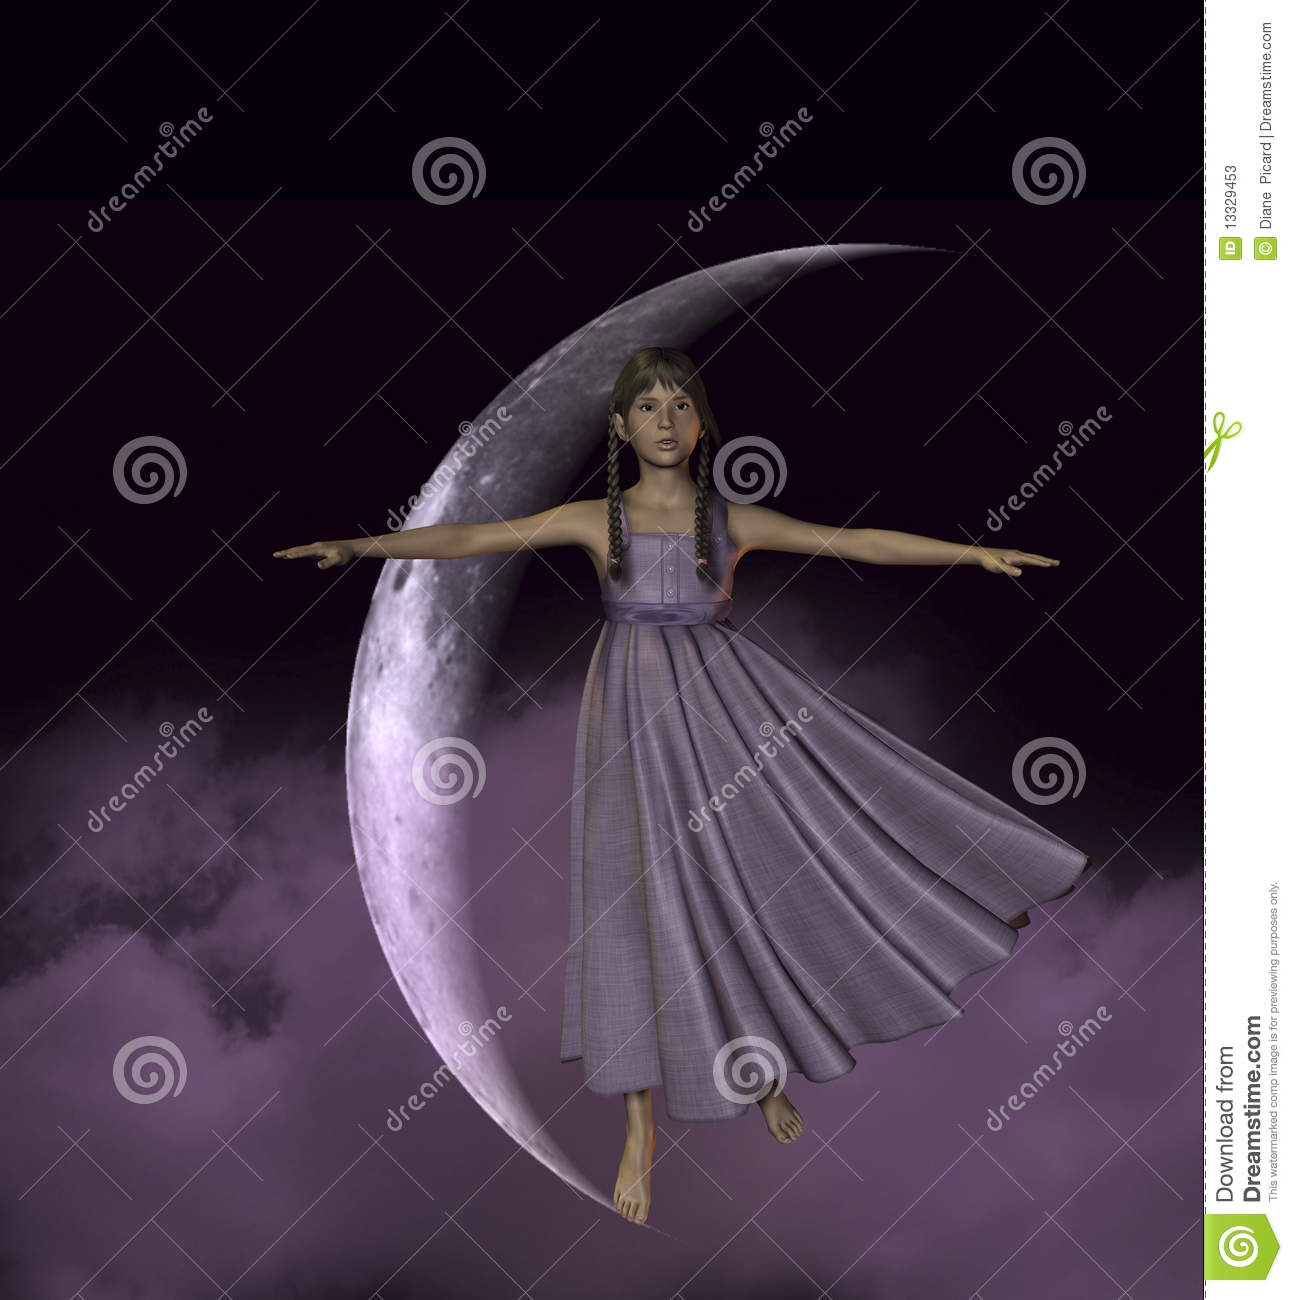 Take Me To The Moon Stock Illustration. Illustration Of